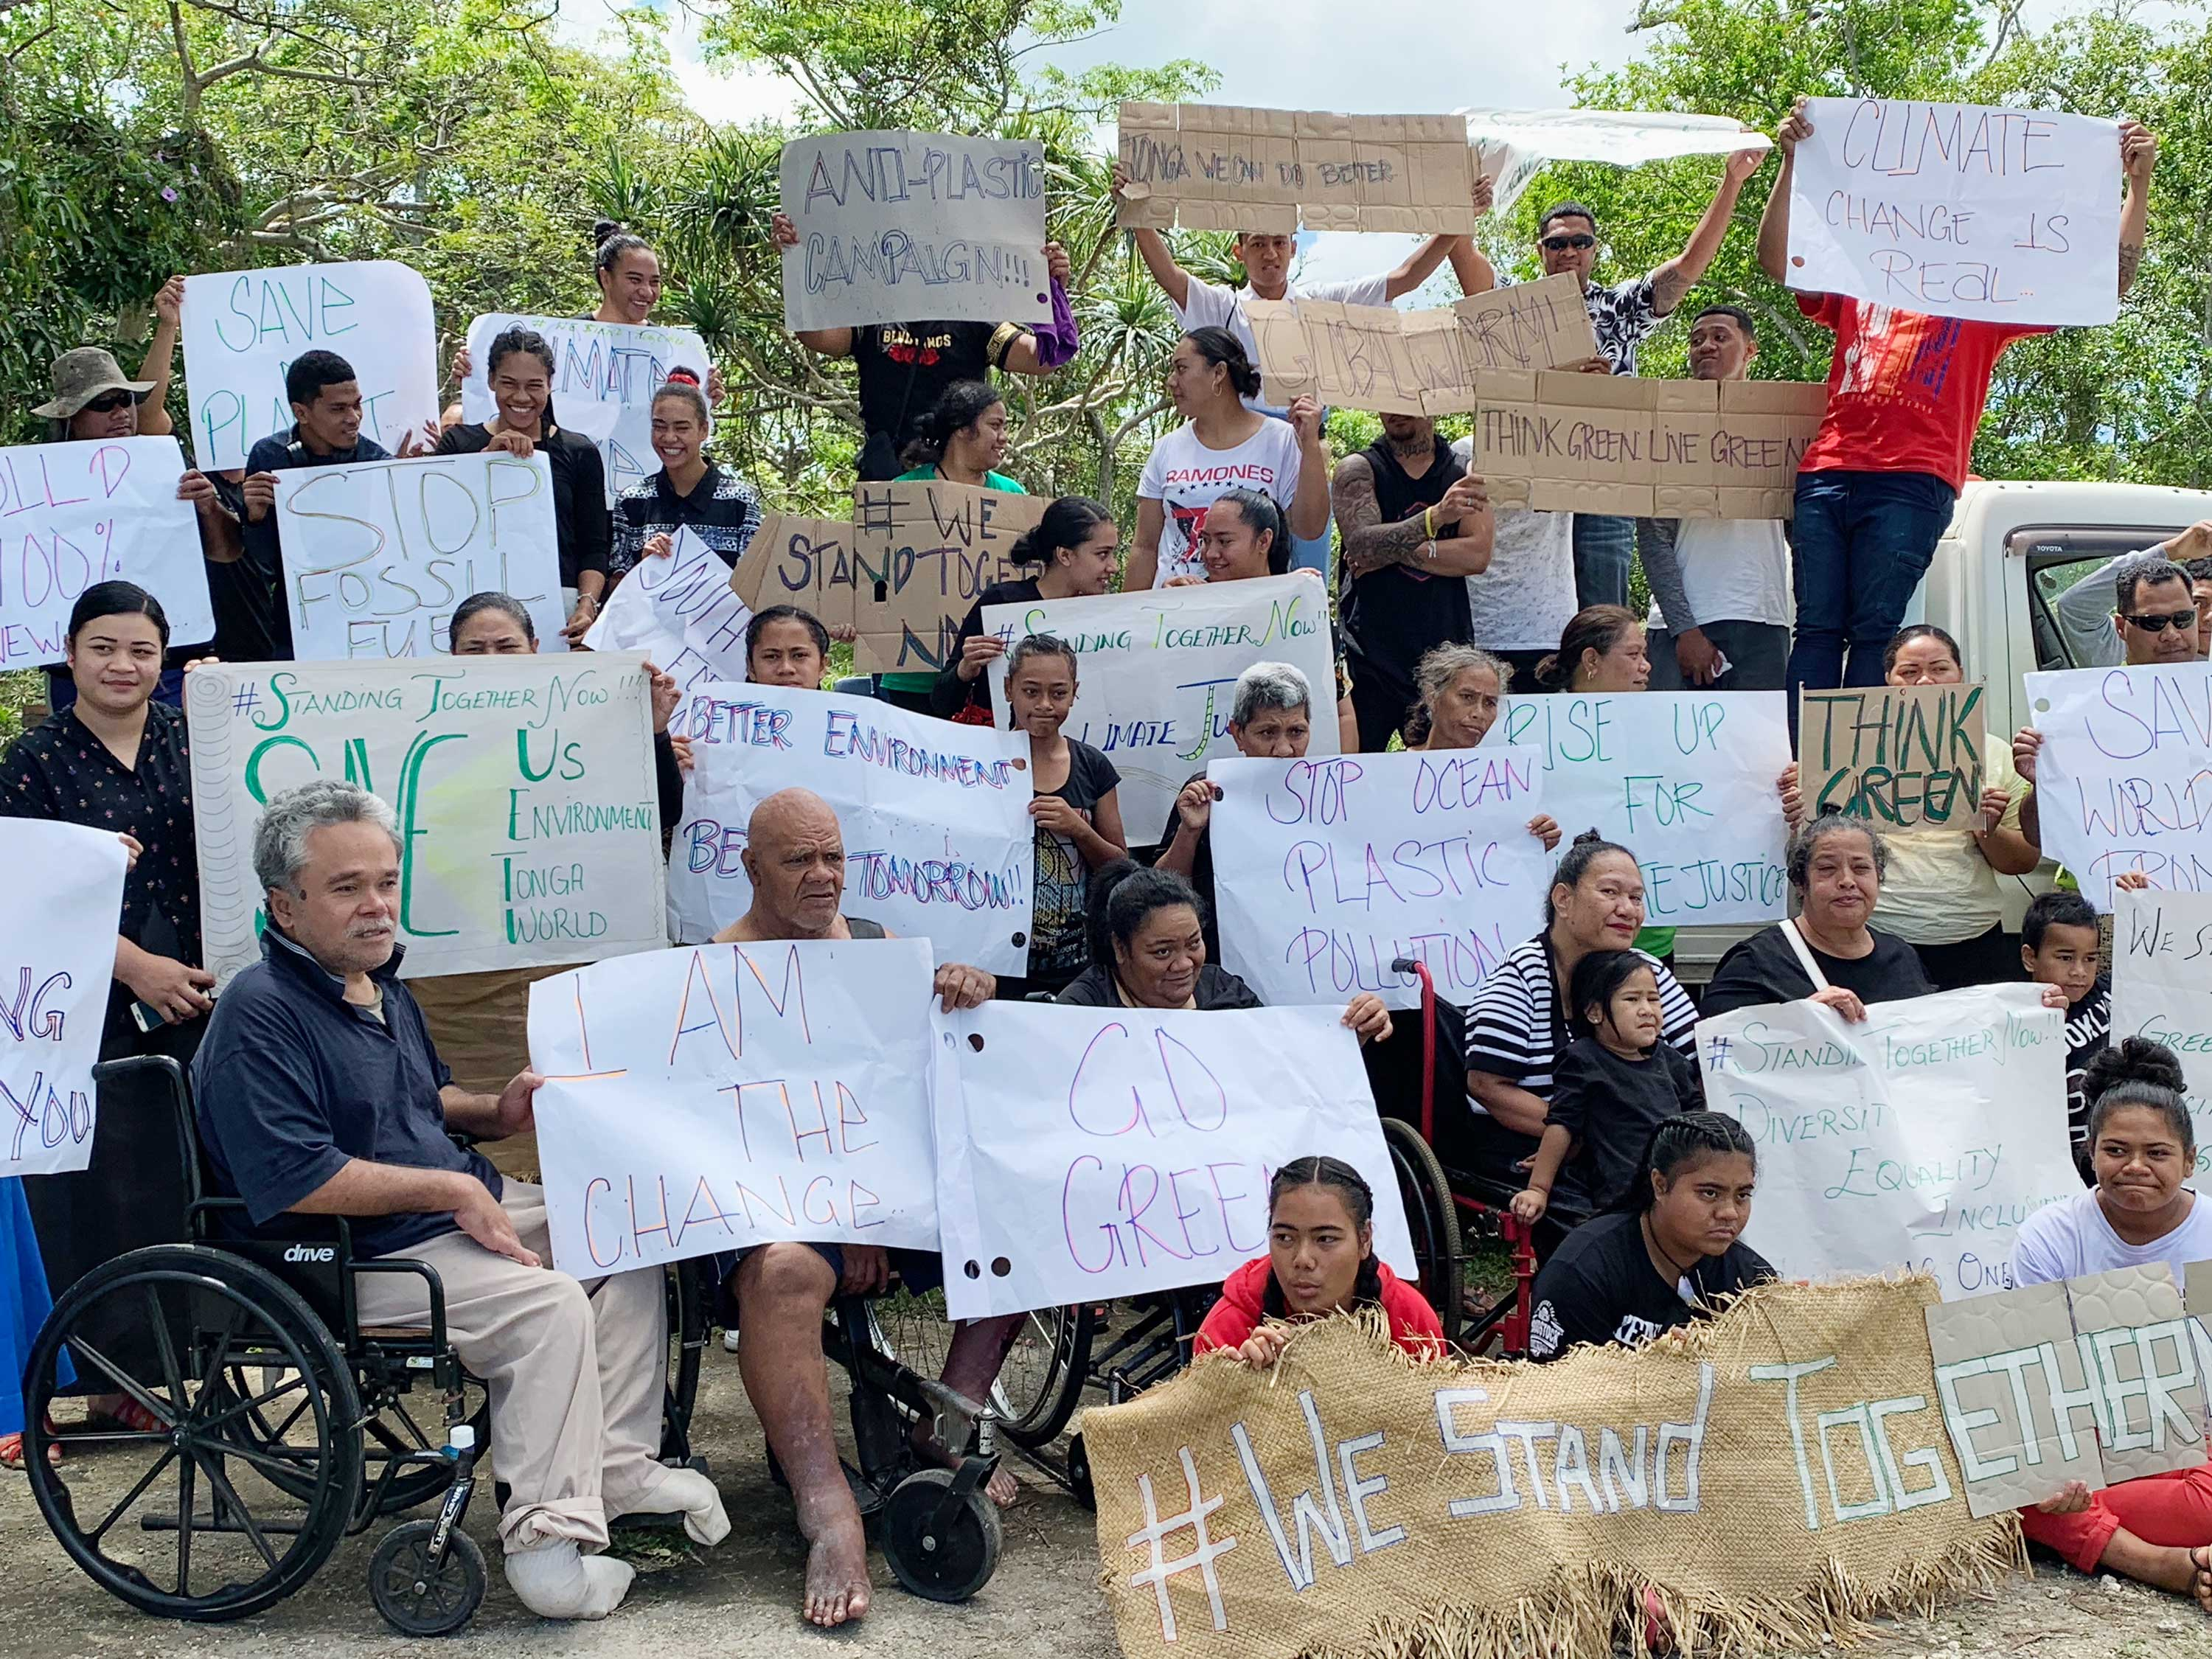 People with disabilities, some in wheelchairs, hold up signs on paper and tarp protesting against fossil fuels, plastics, and environmental destruction.